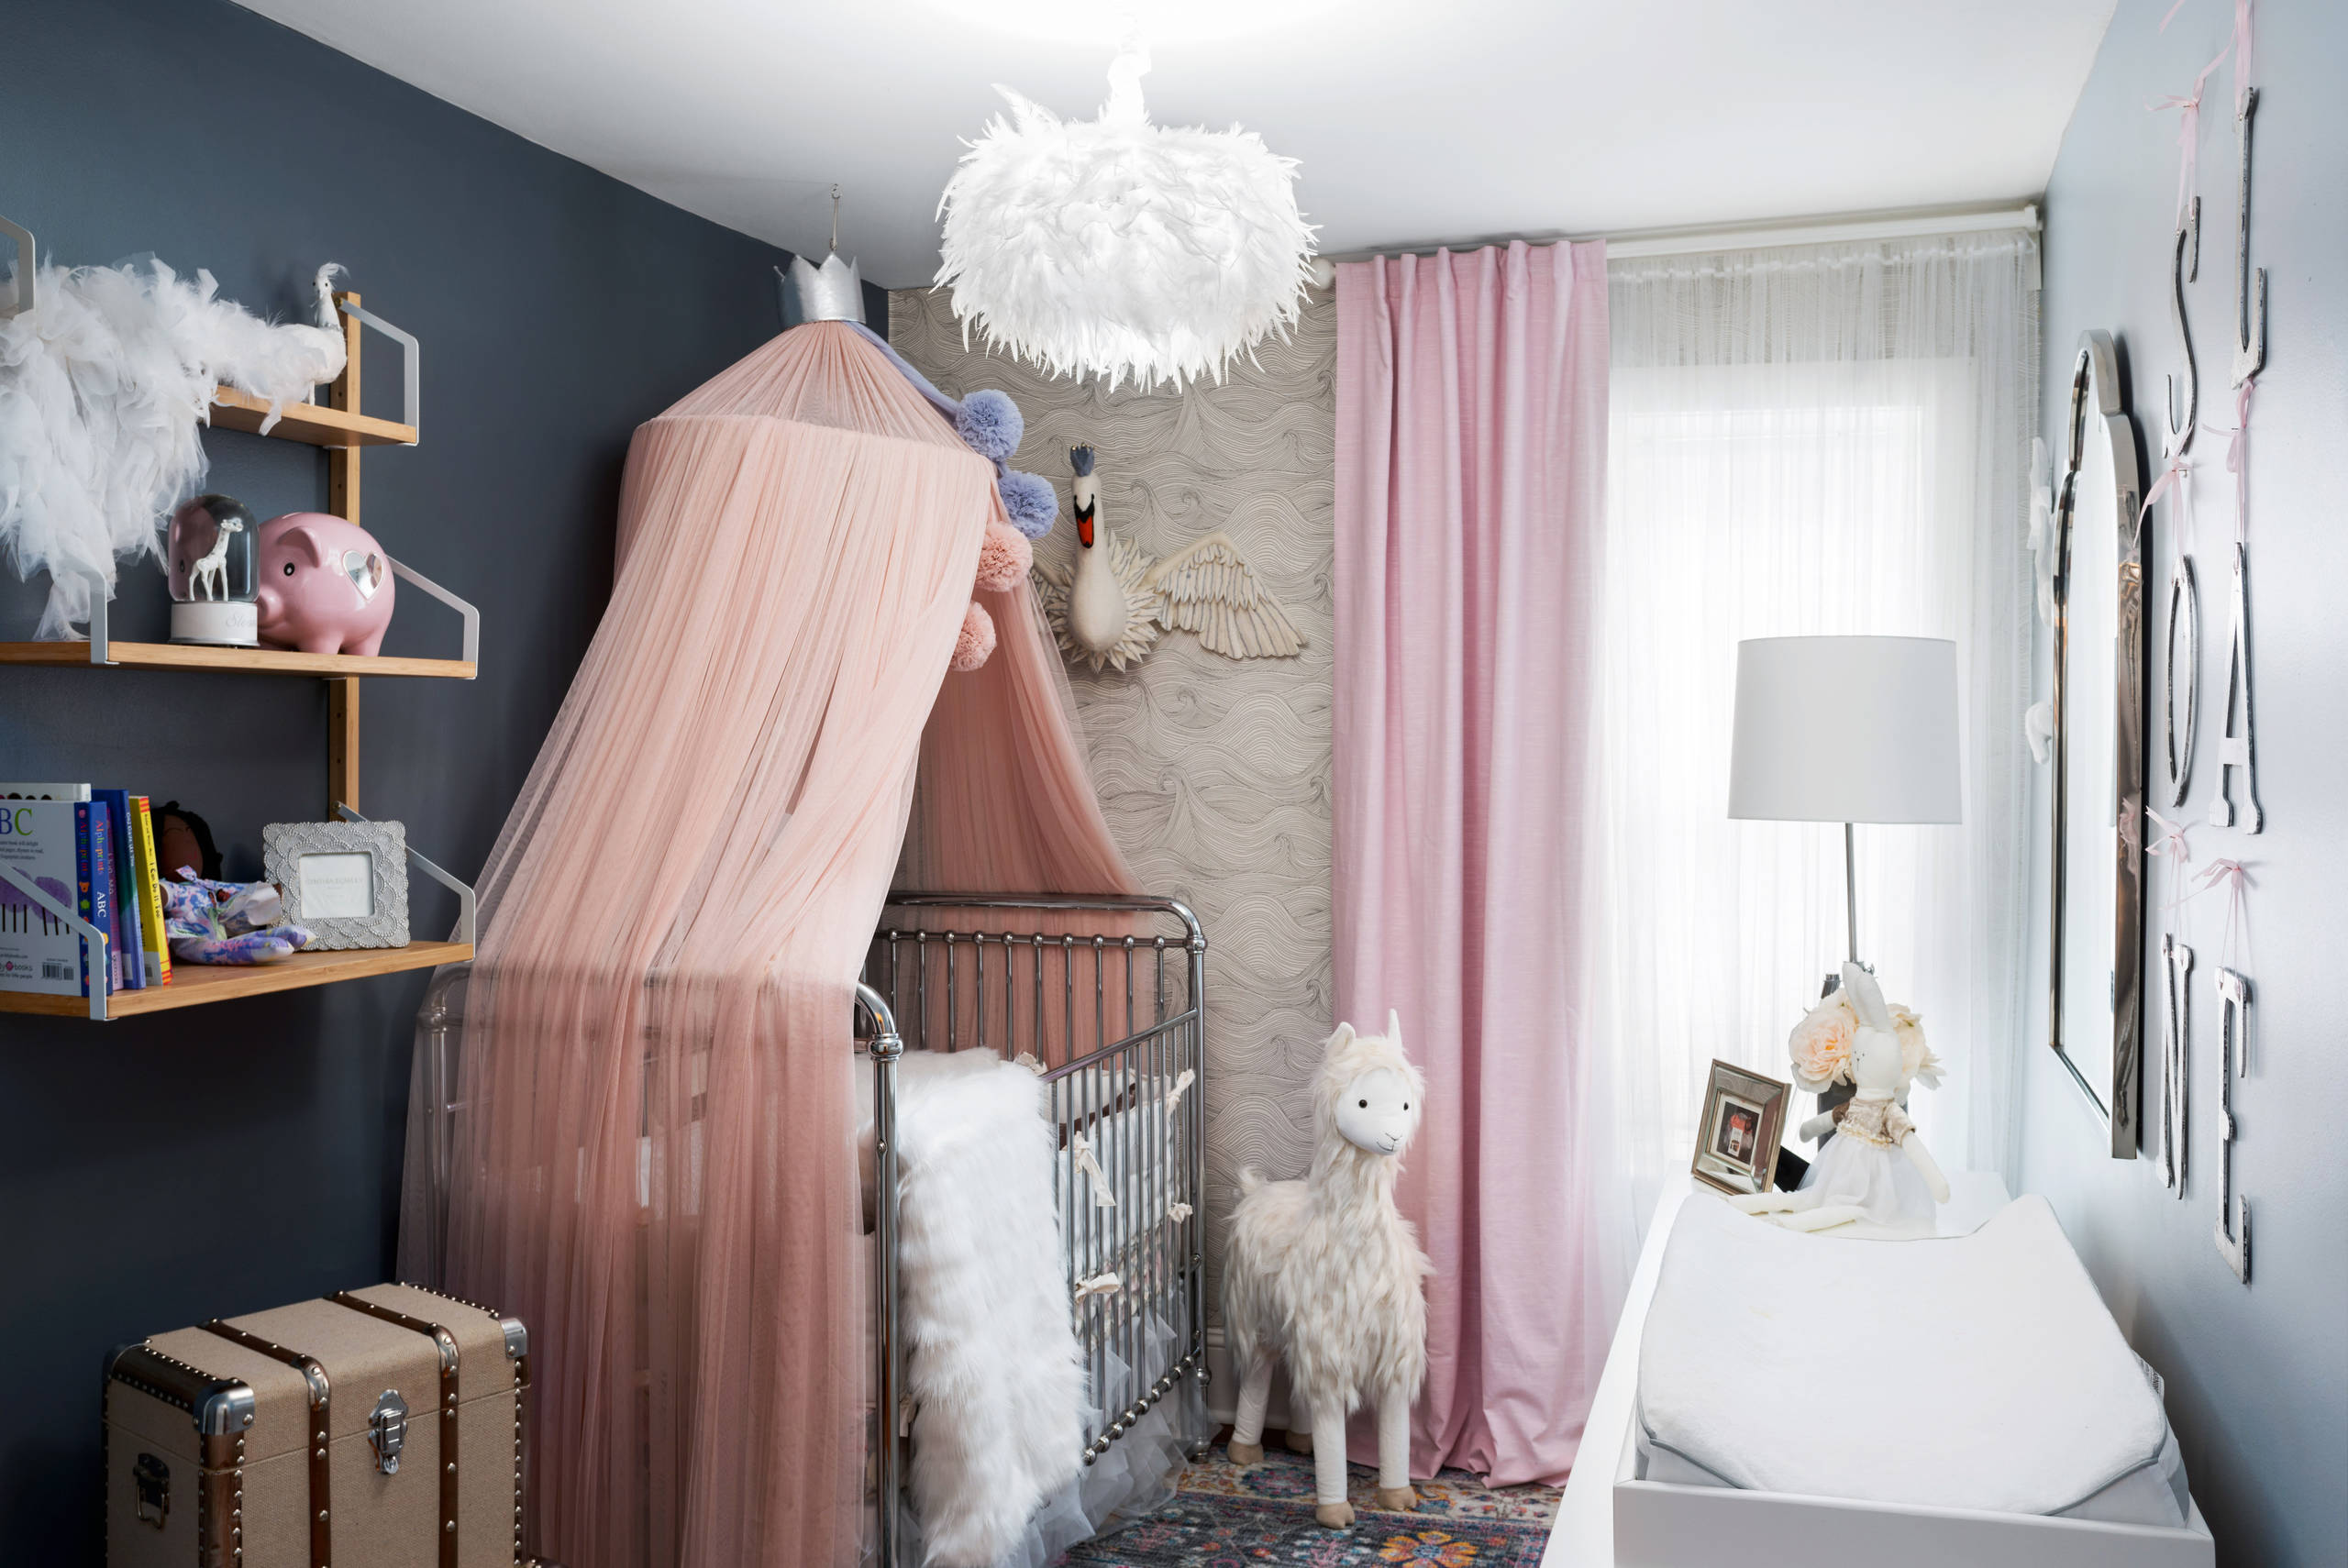 17 Delightful Eclectic Kids' Room Designs With A Cozy Look